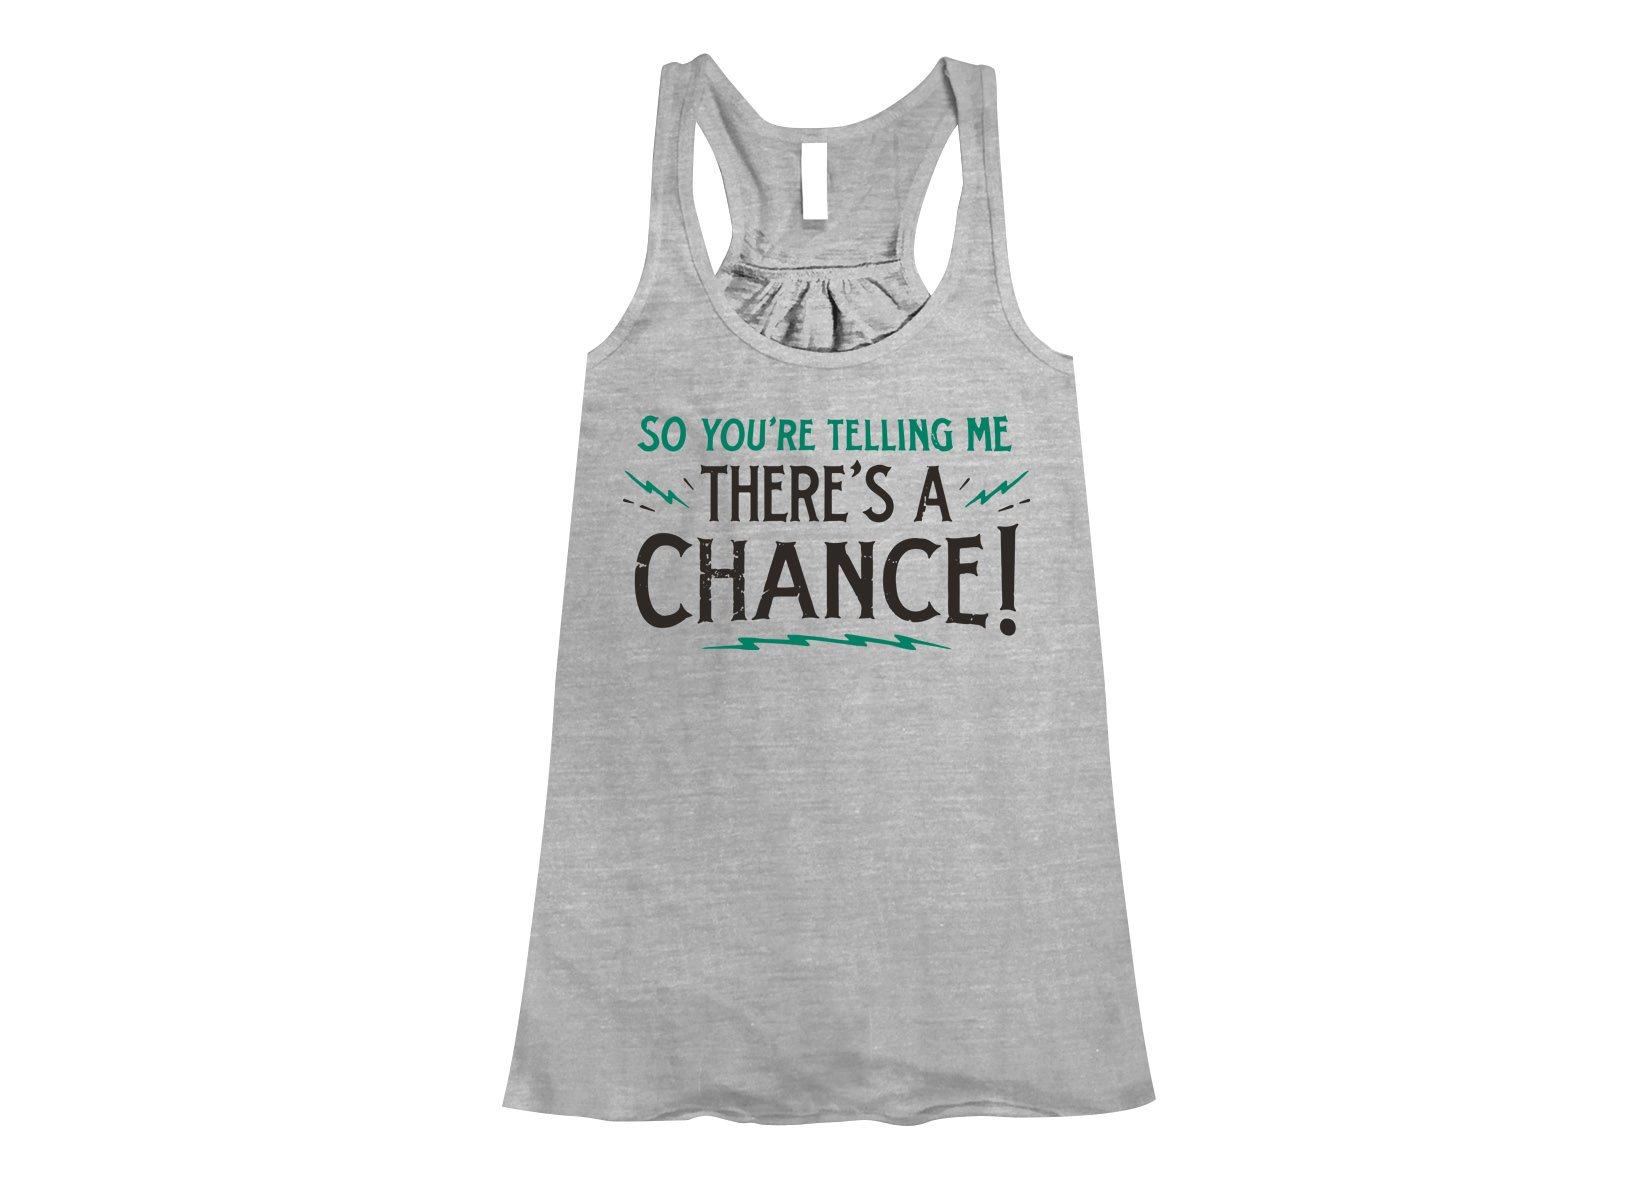 So You're Telling Me There's A Chance on Womens Tanks T-Shirt